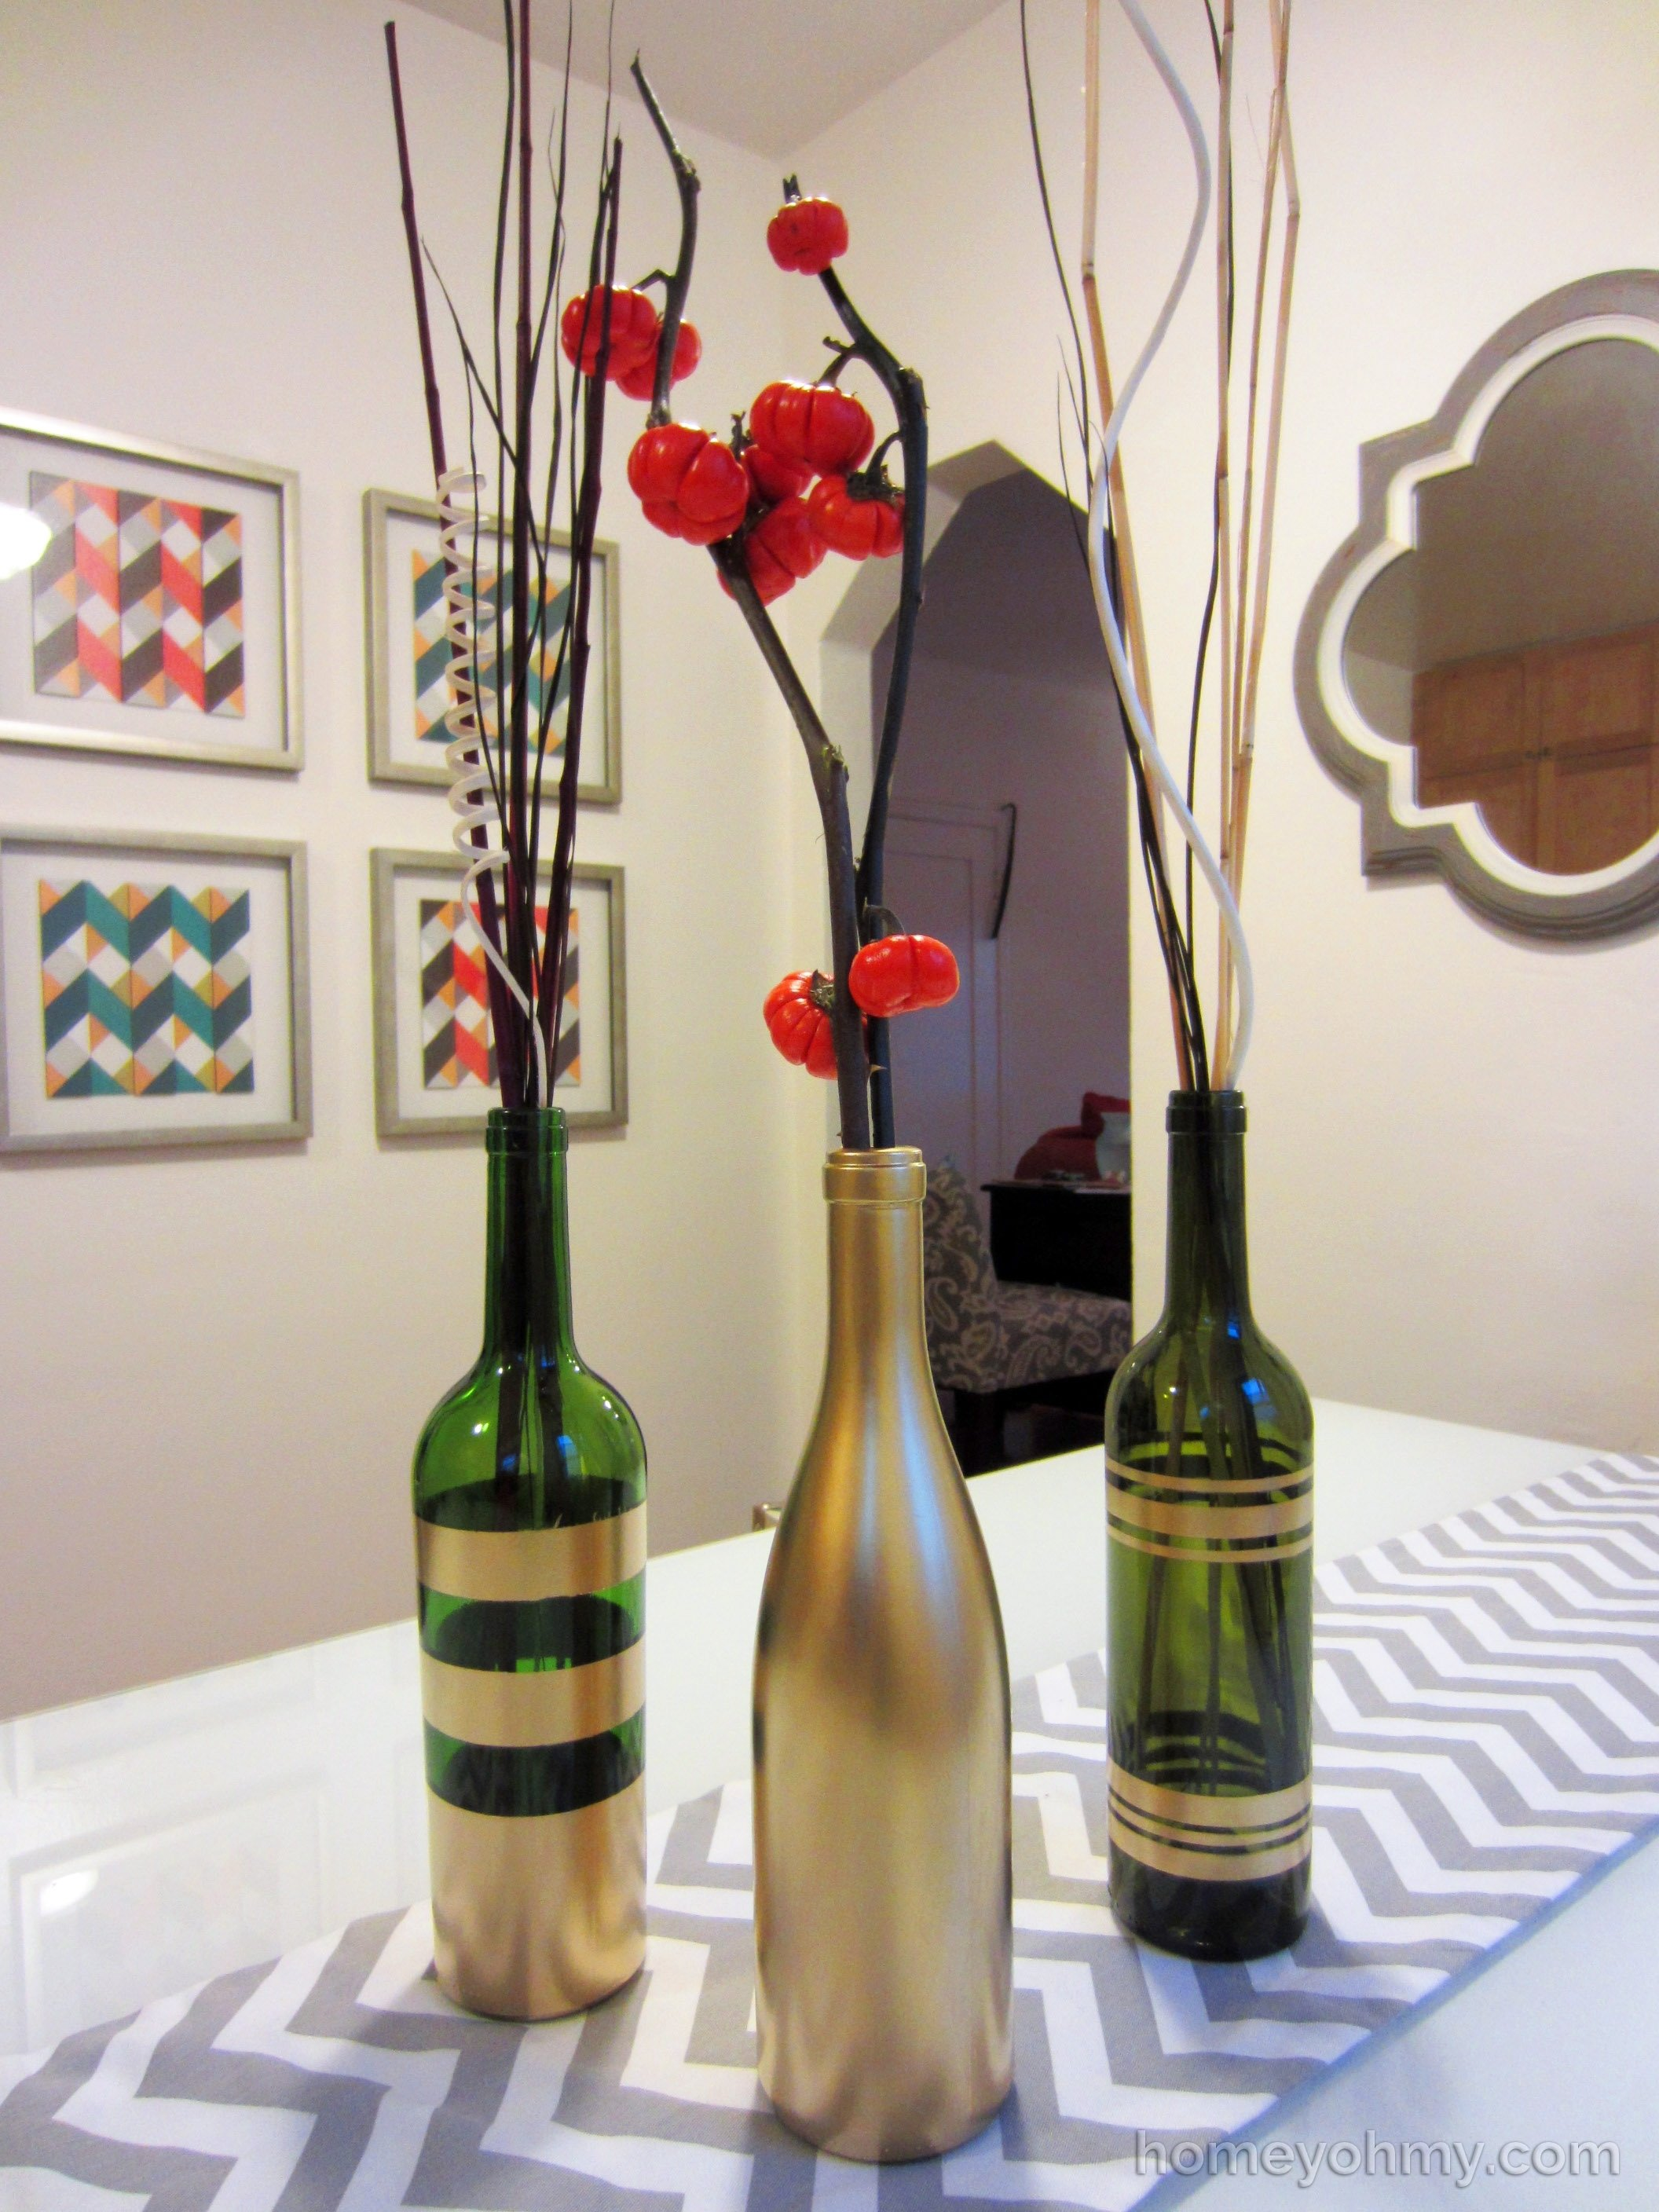 10 Most Popular Craft Ideas For Wine Bottles diy spray painted wine bottles for fall decorating 2 2020